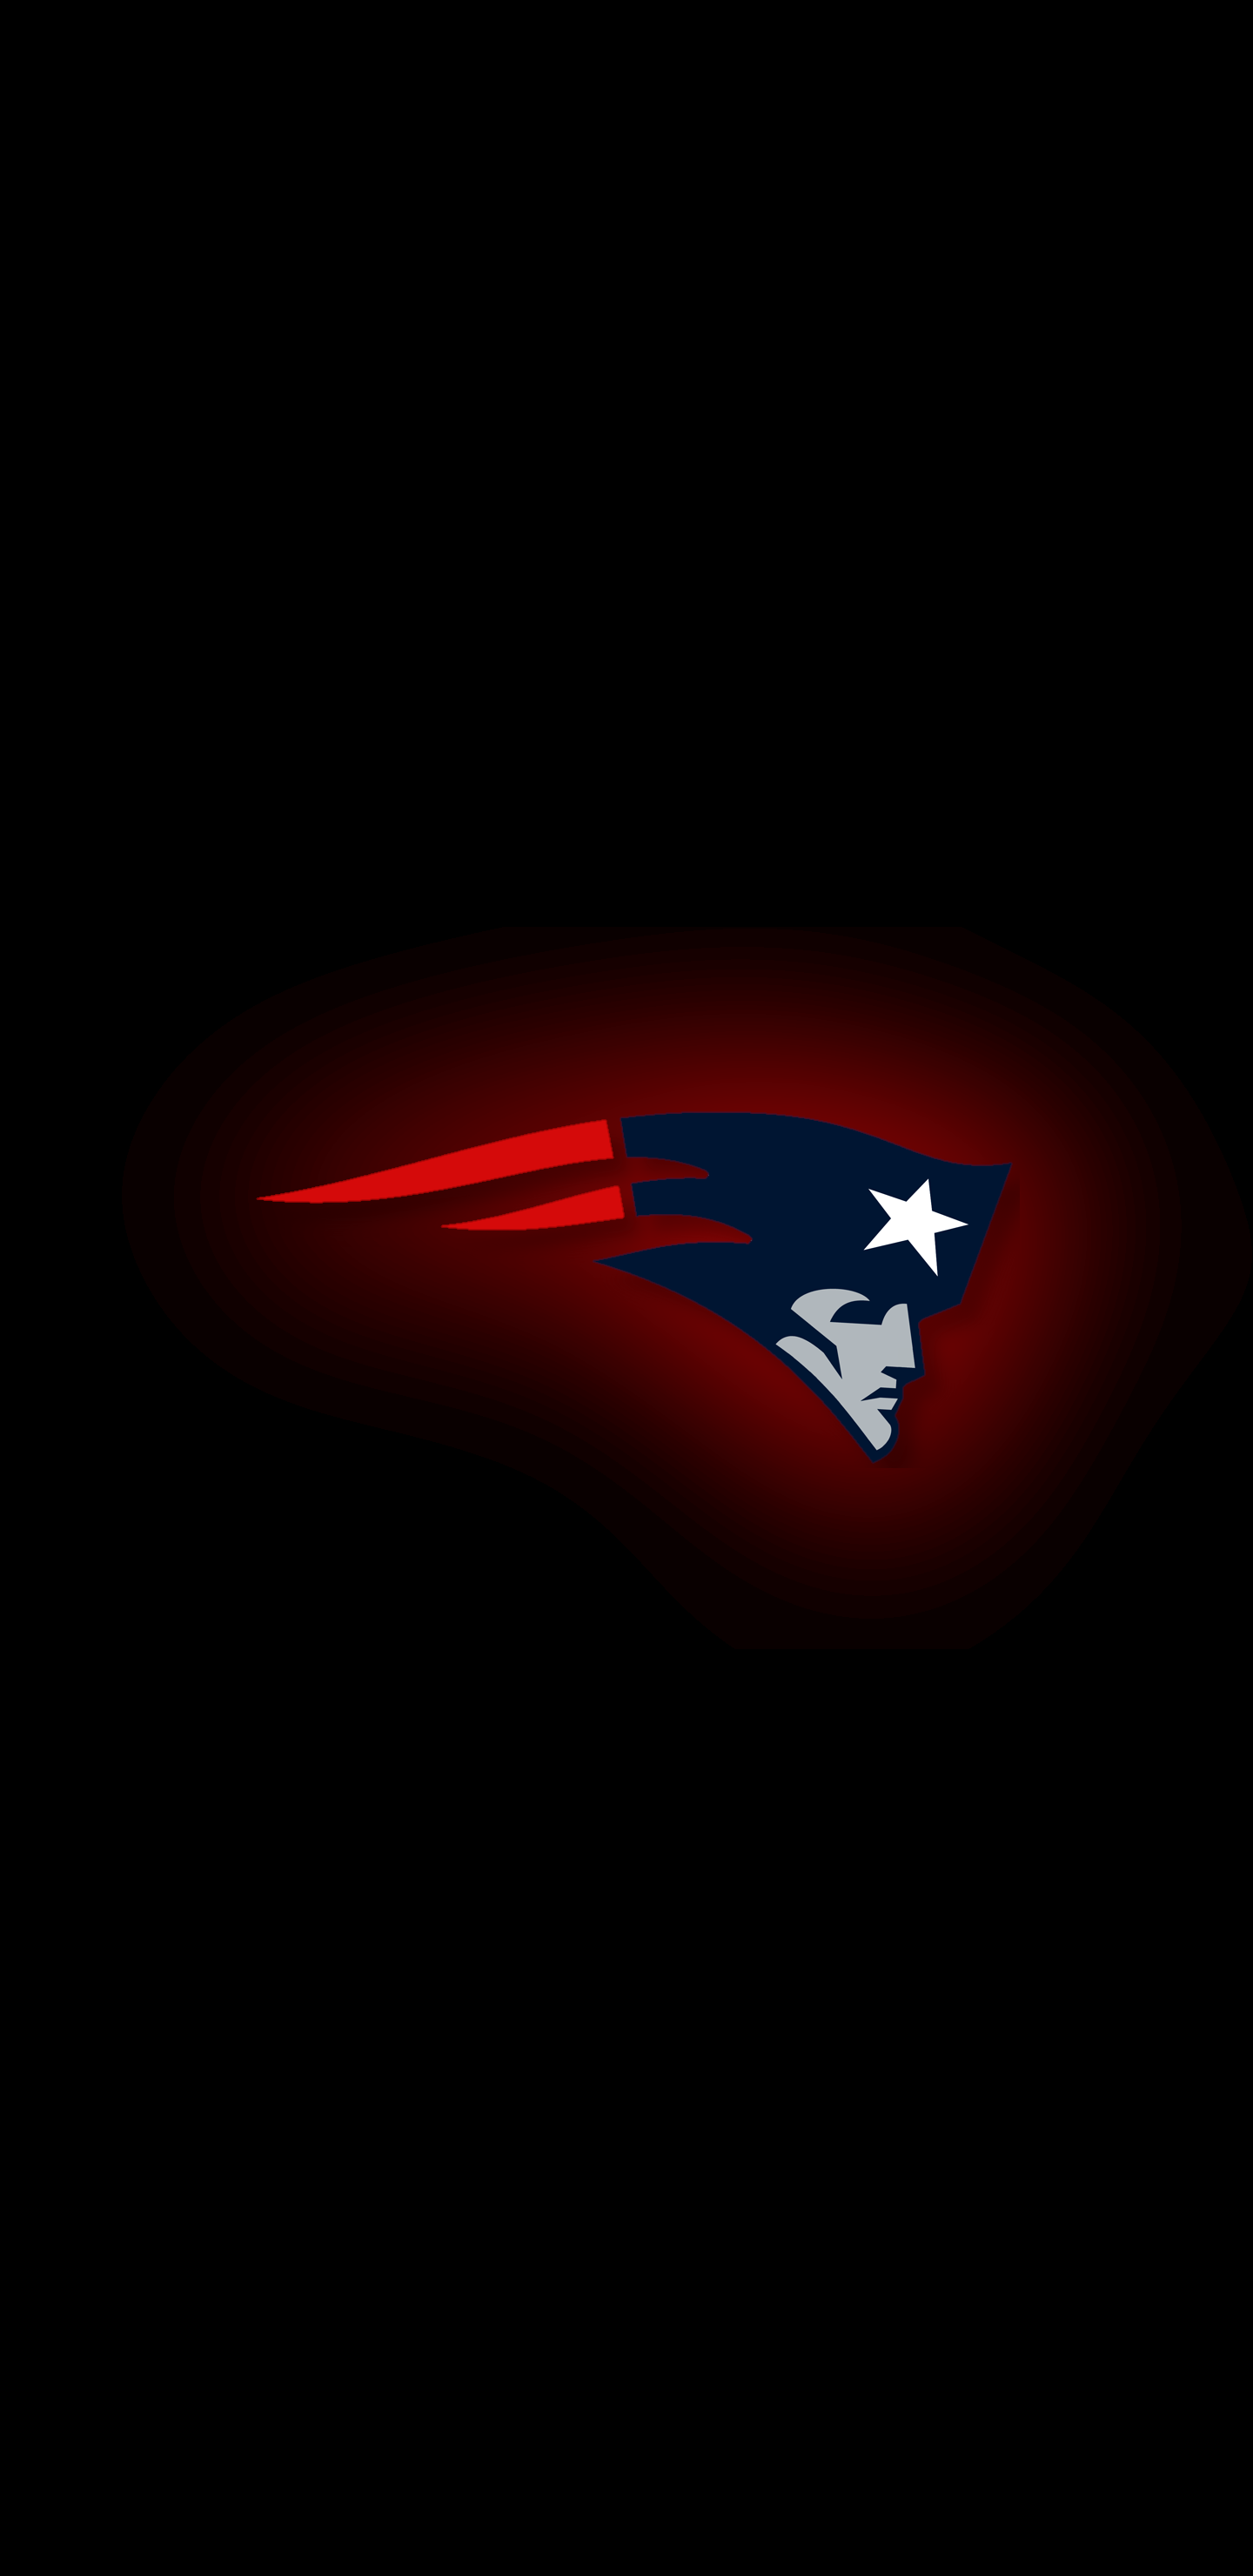 I M Making And Amoled Wallpaper For Every Nfl Team 9 Down Patriots New England Patriots Wallpaper New England Patriots Logo Patriots Logo